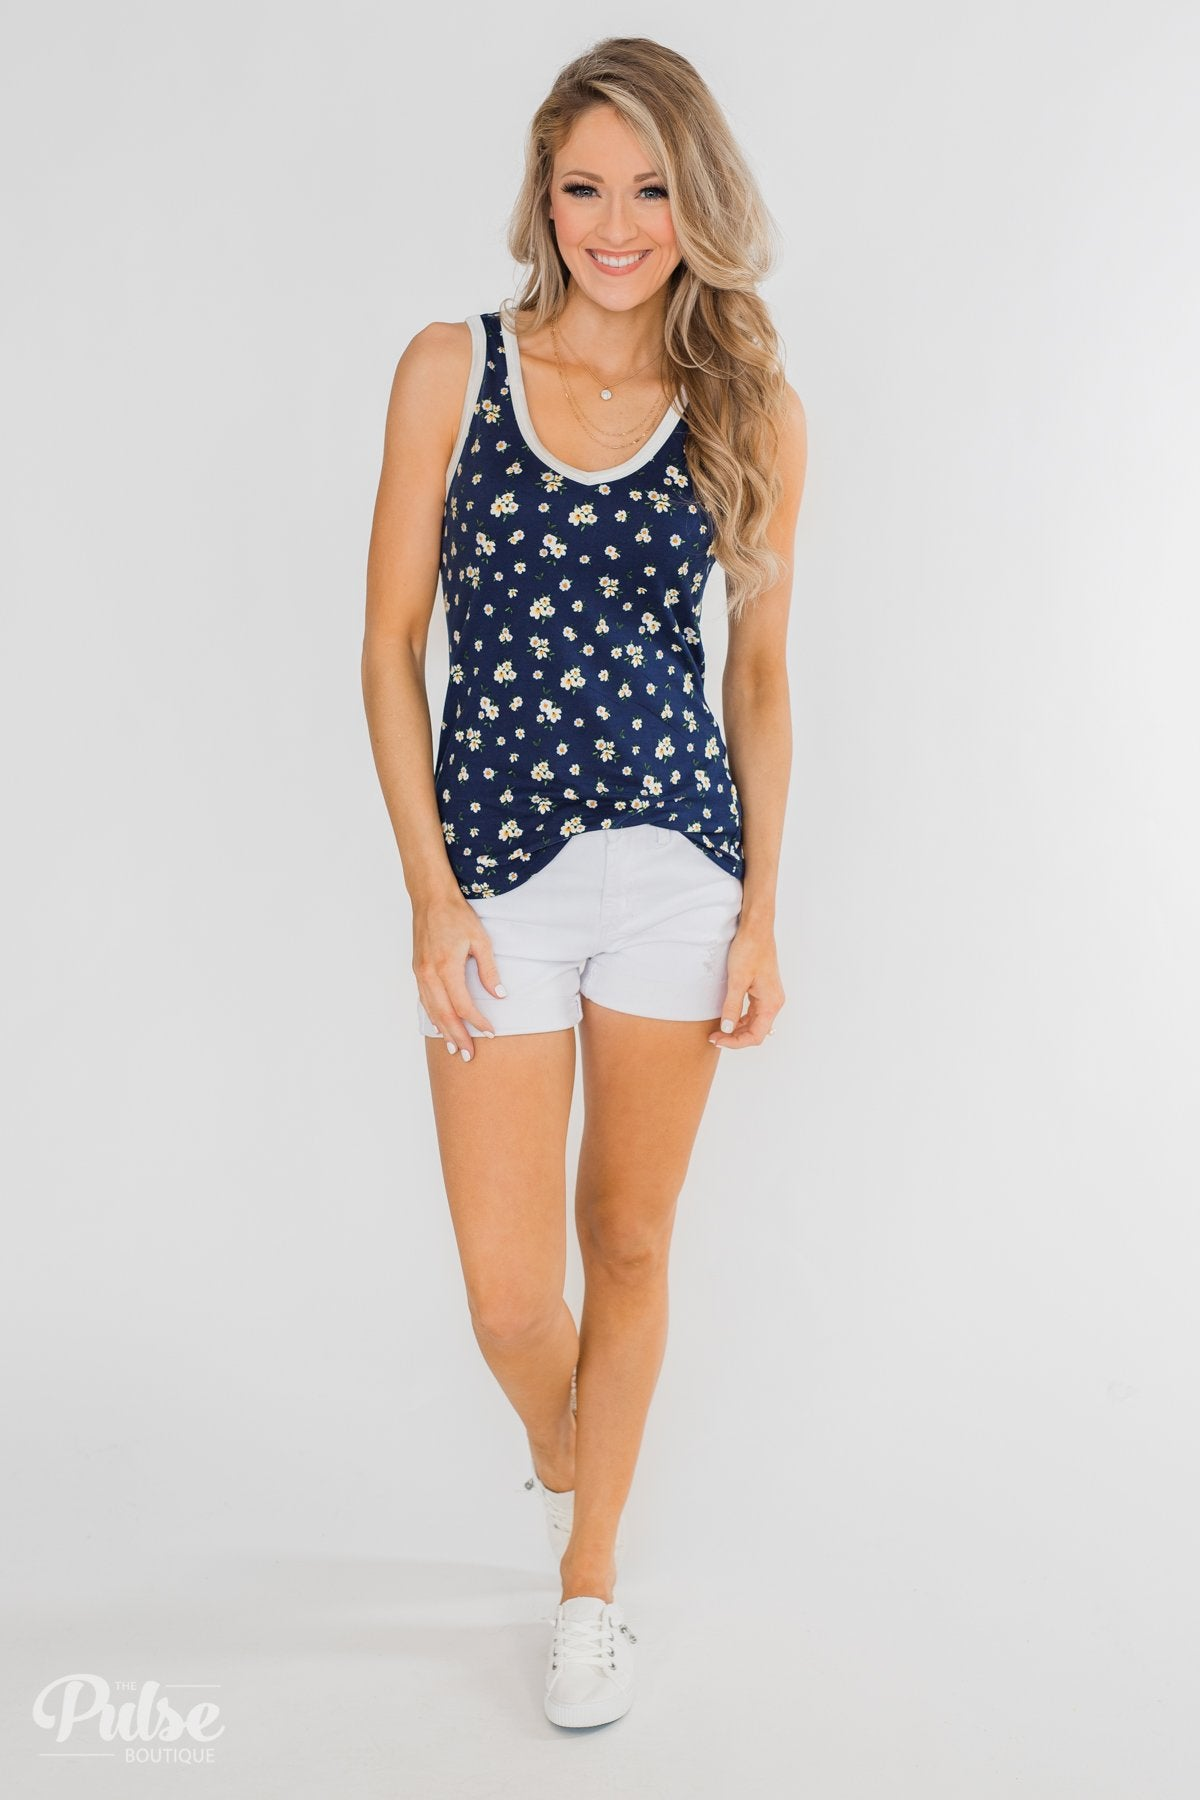 Walk Through The Wildflowers V-Neck Tank Top- Navy